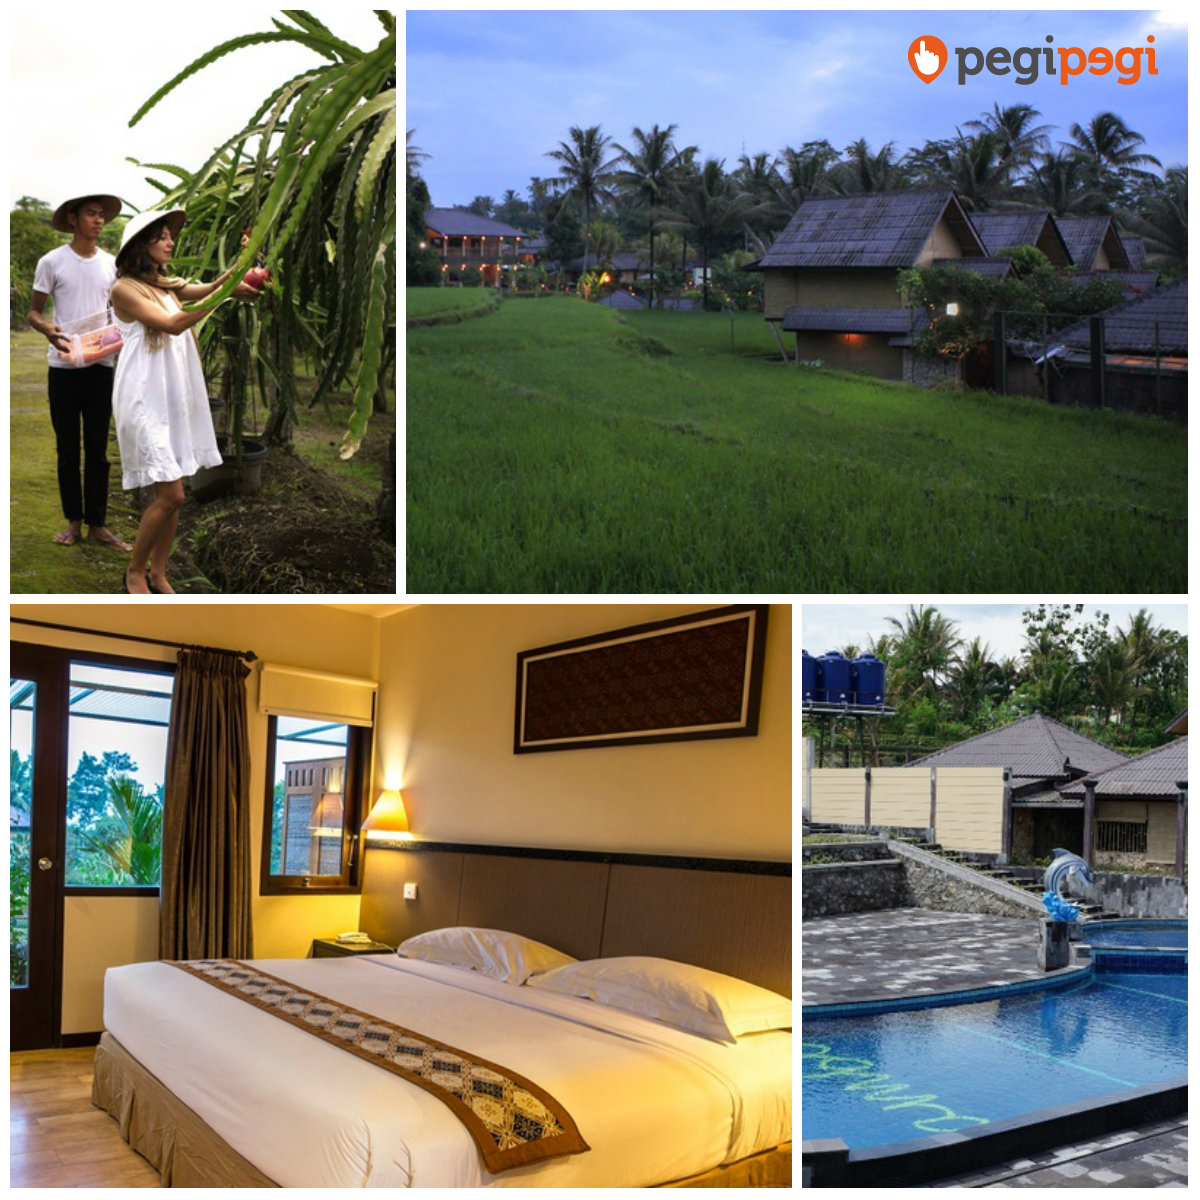 Sambi Resort & Spa Jogja